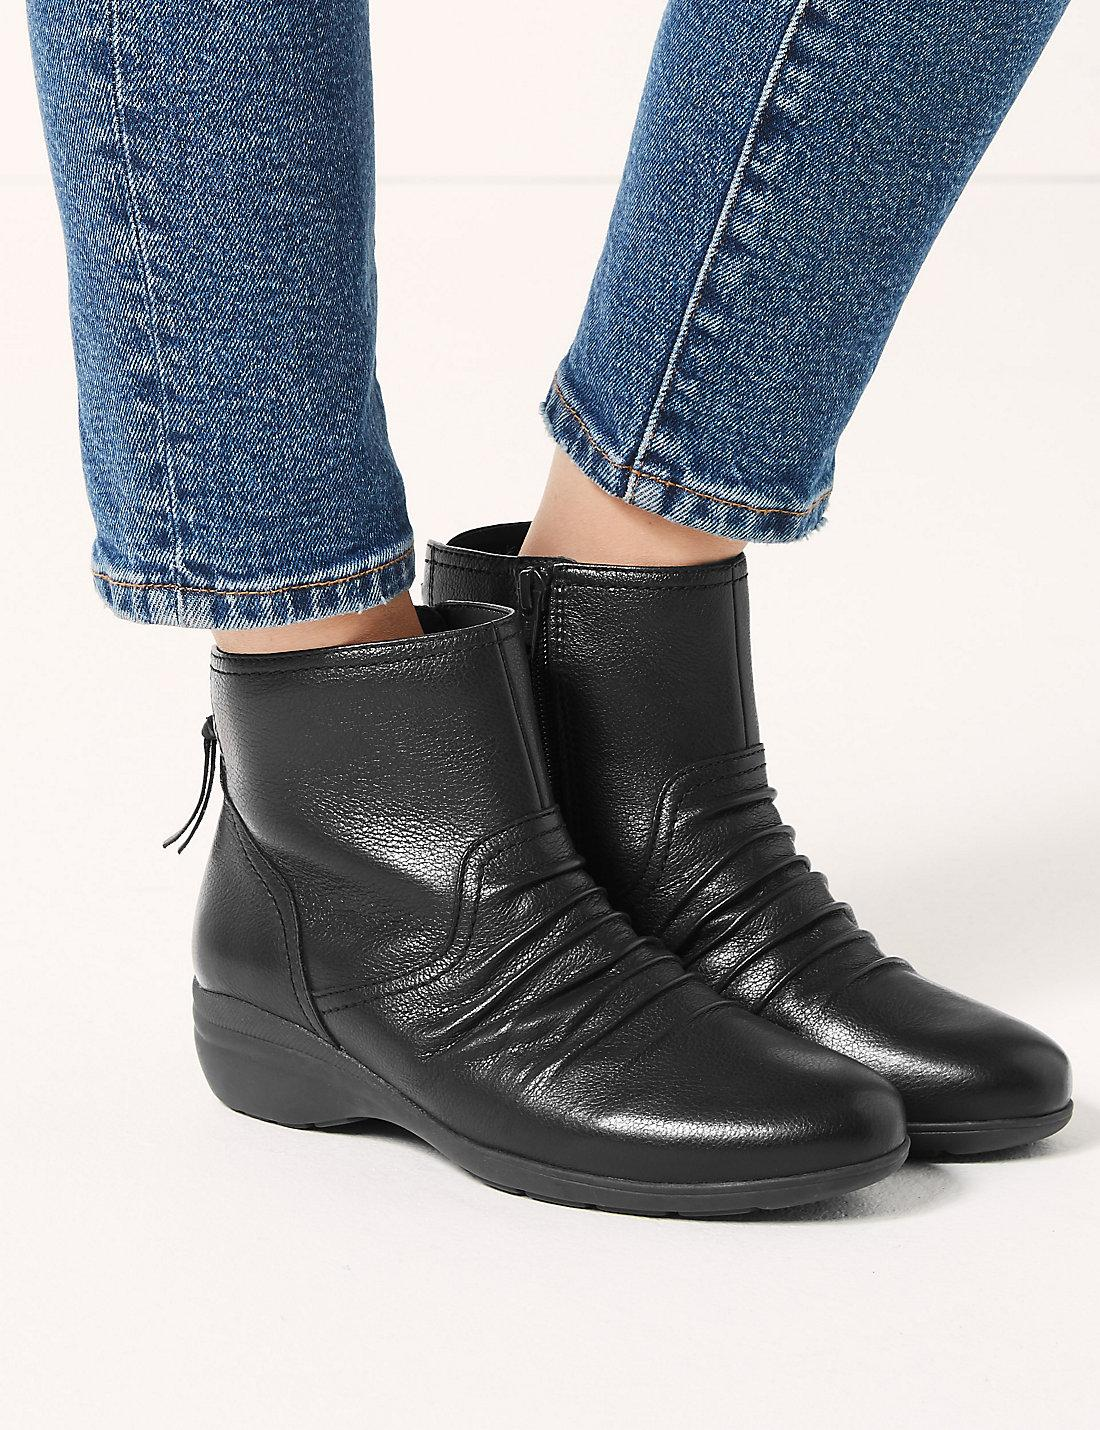 6b70919ea1f8 Lyst - Marks   Spencer Wide Fit Leather Wedge Heel Ankle Boots in Black